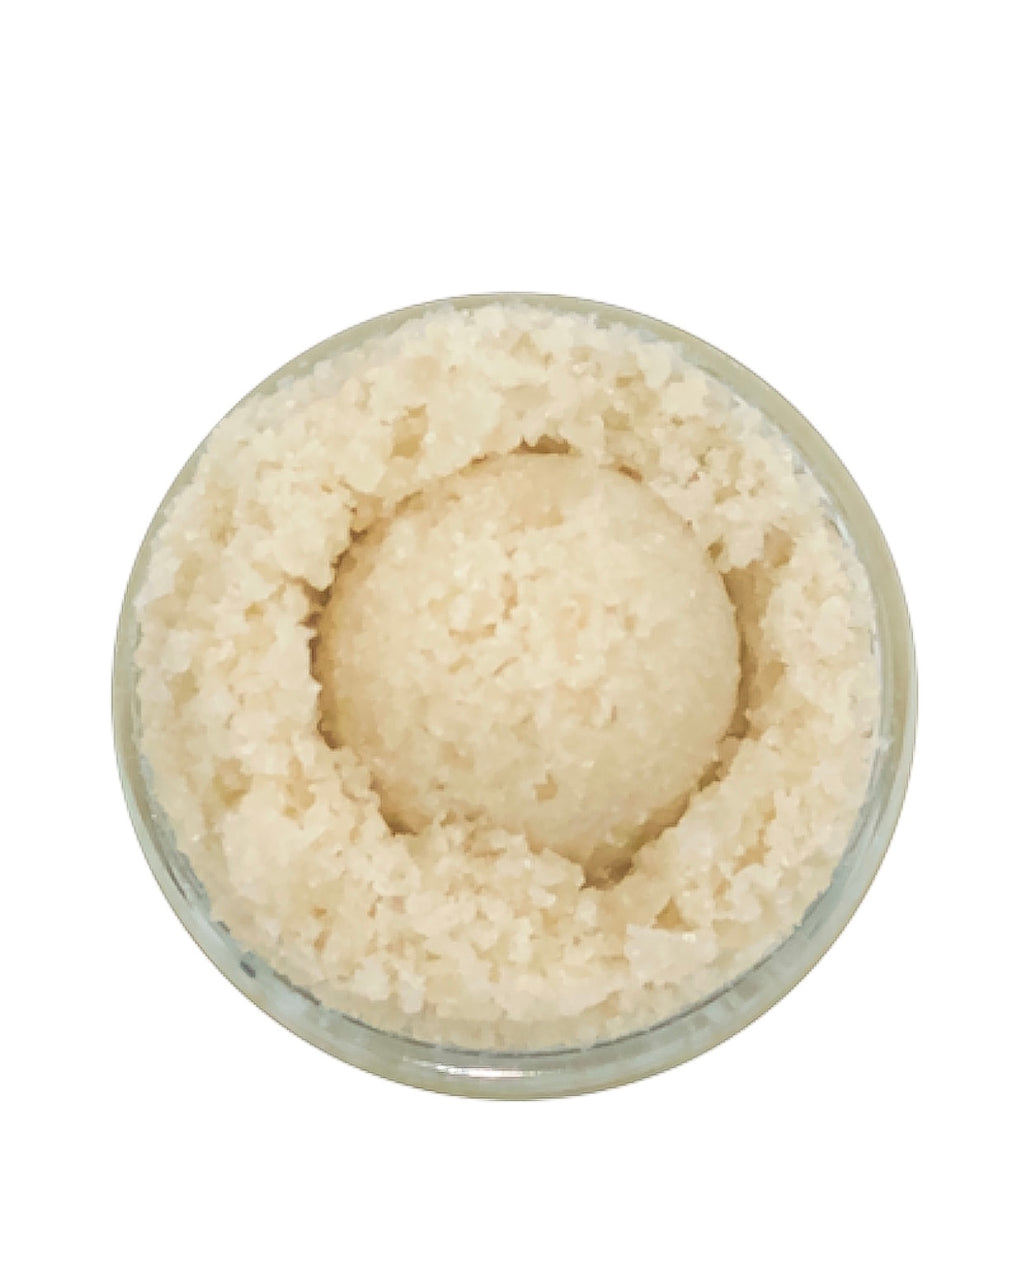 Honeysuckle + Grapefruit Exfoliating Sugar Body Polish